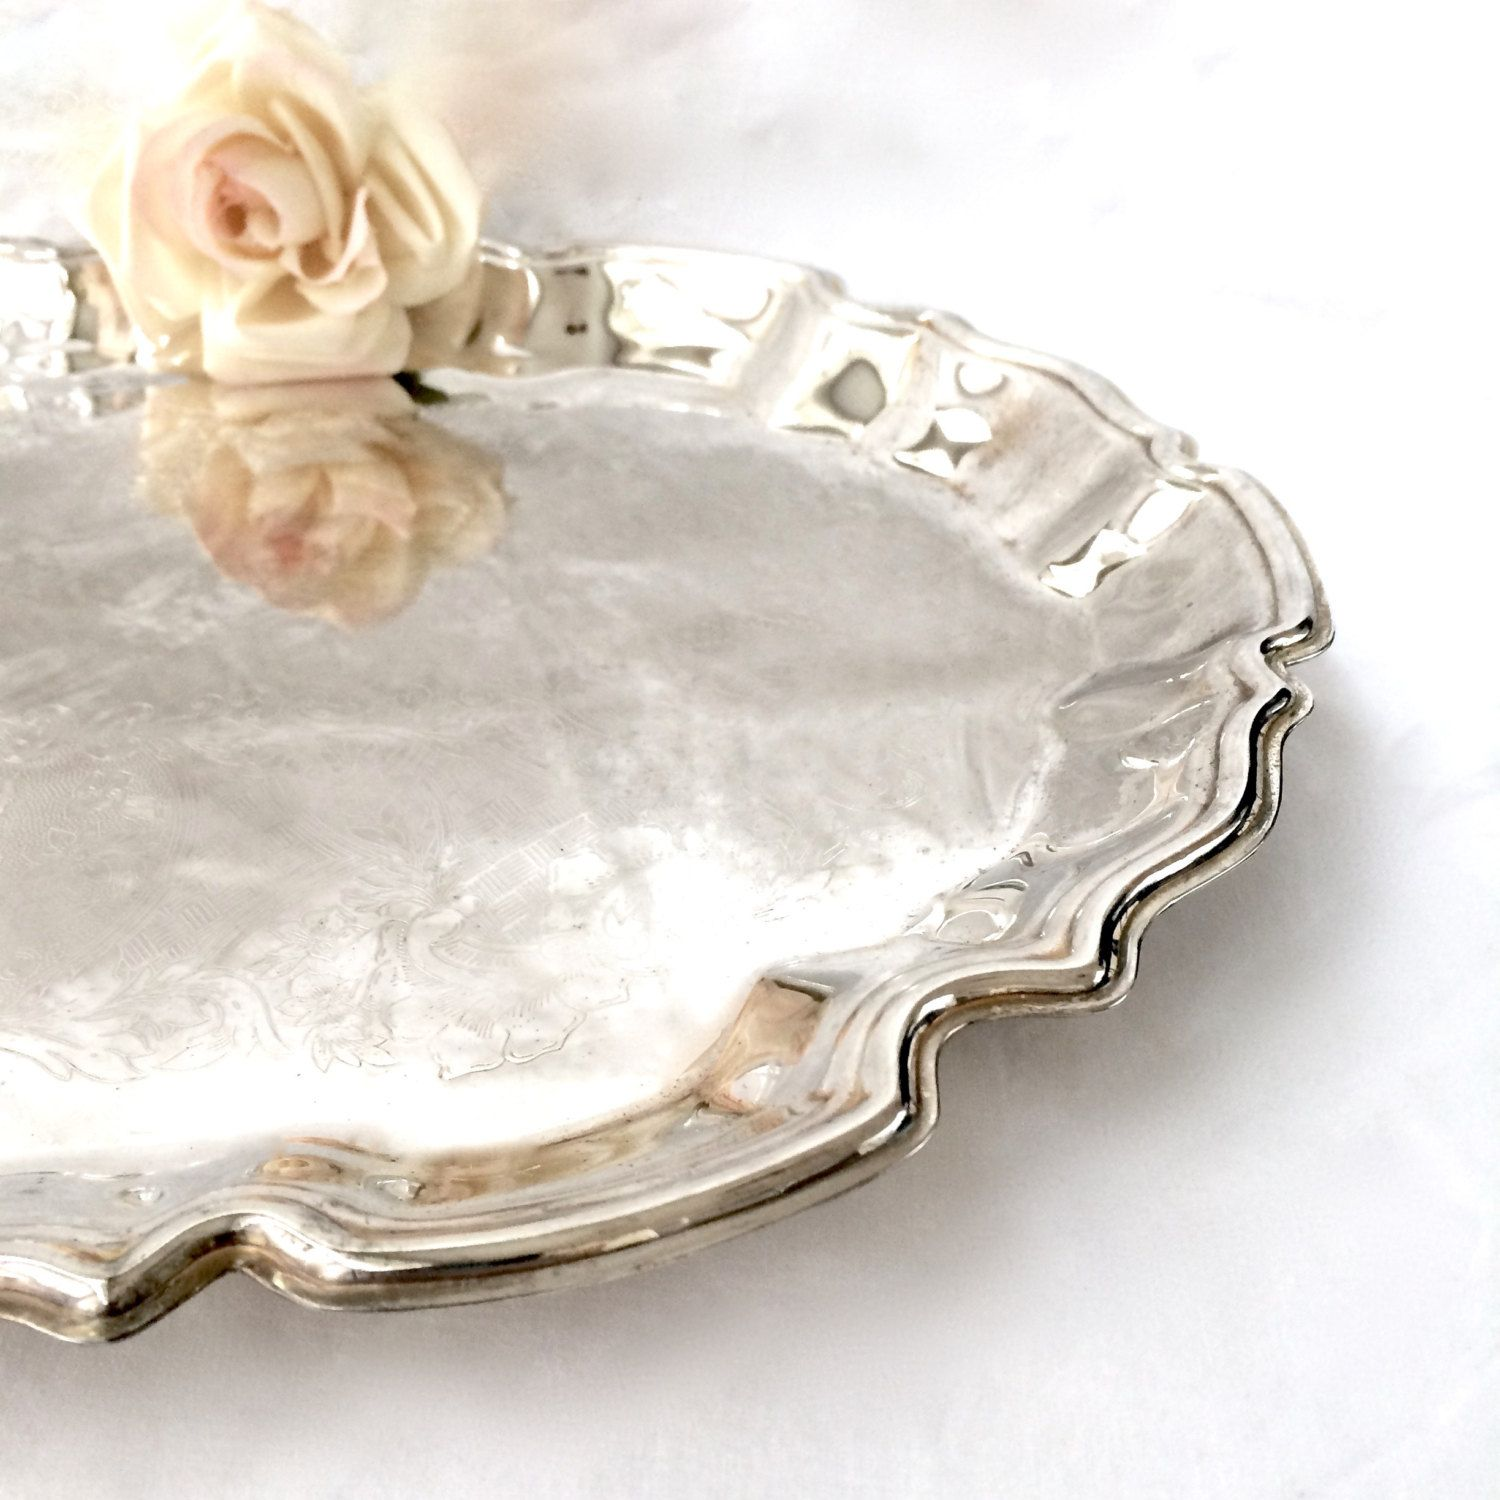 Vintage Silver Tray, Vanity Tray, Round Silver Platter, Shabby Chic French  Decor, Silver Plate, French Farmhouse Decor